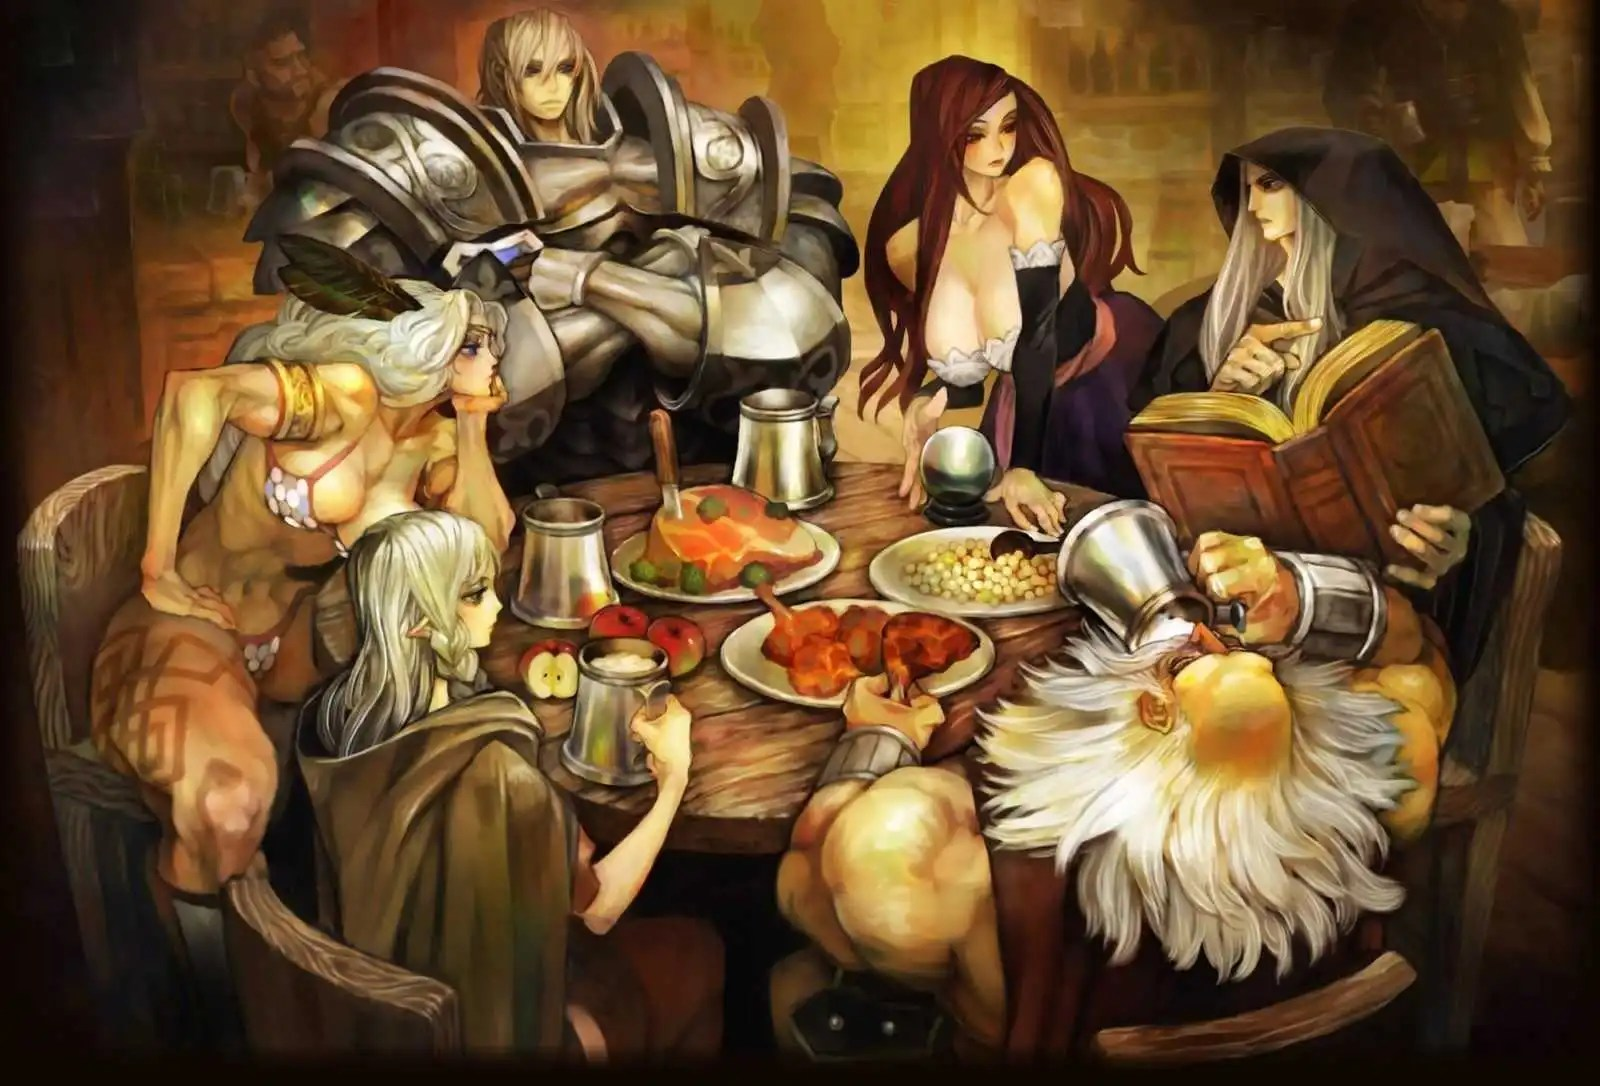 Dragon's Crown - Pro rivelato da un leak